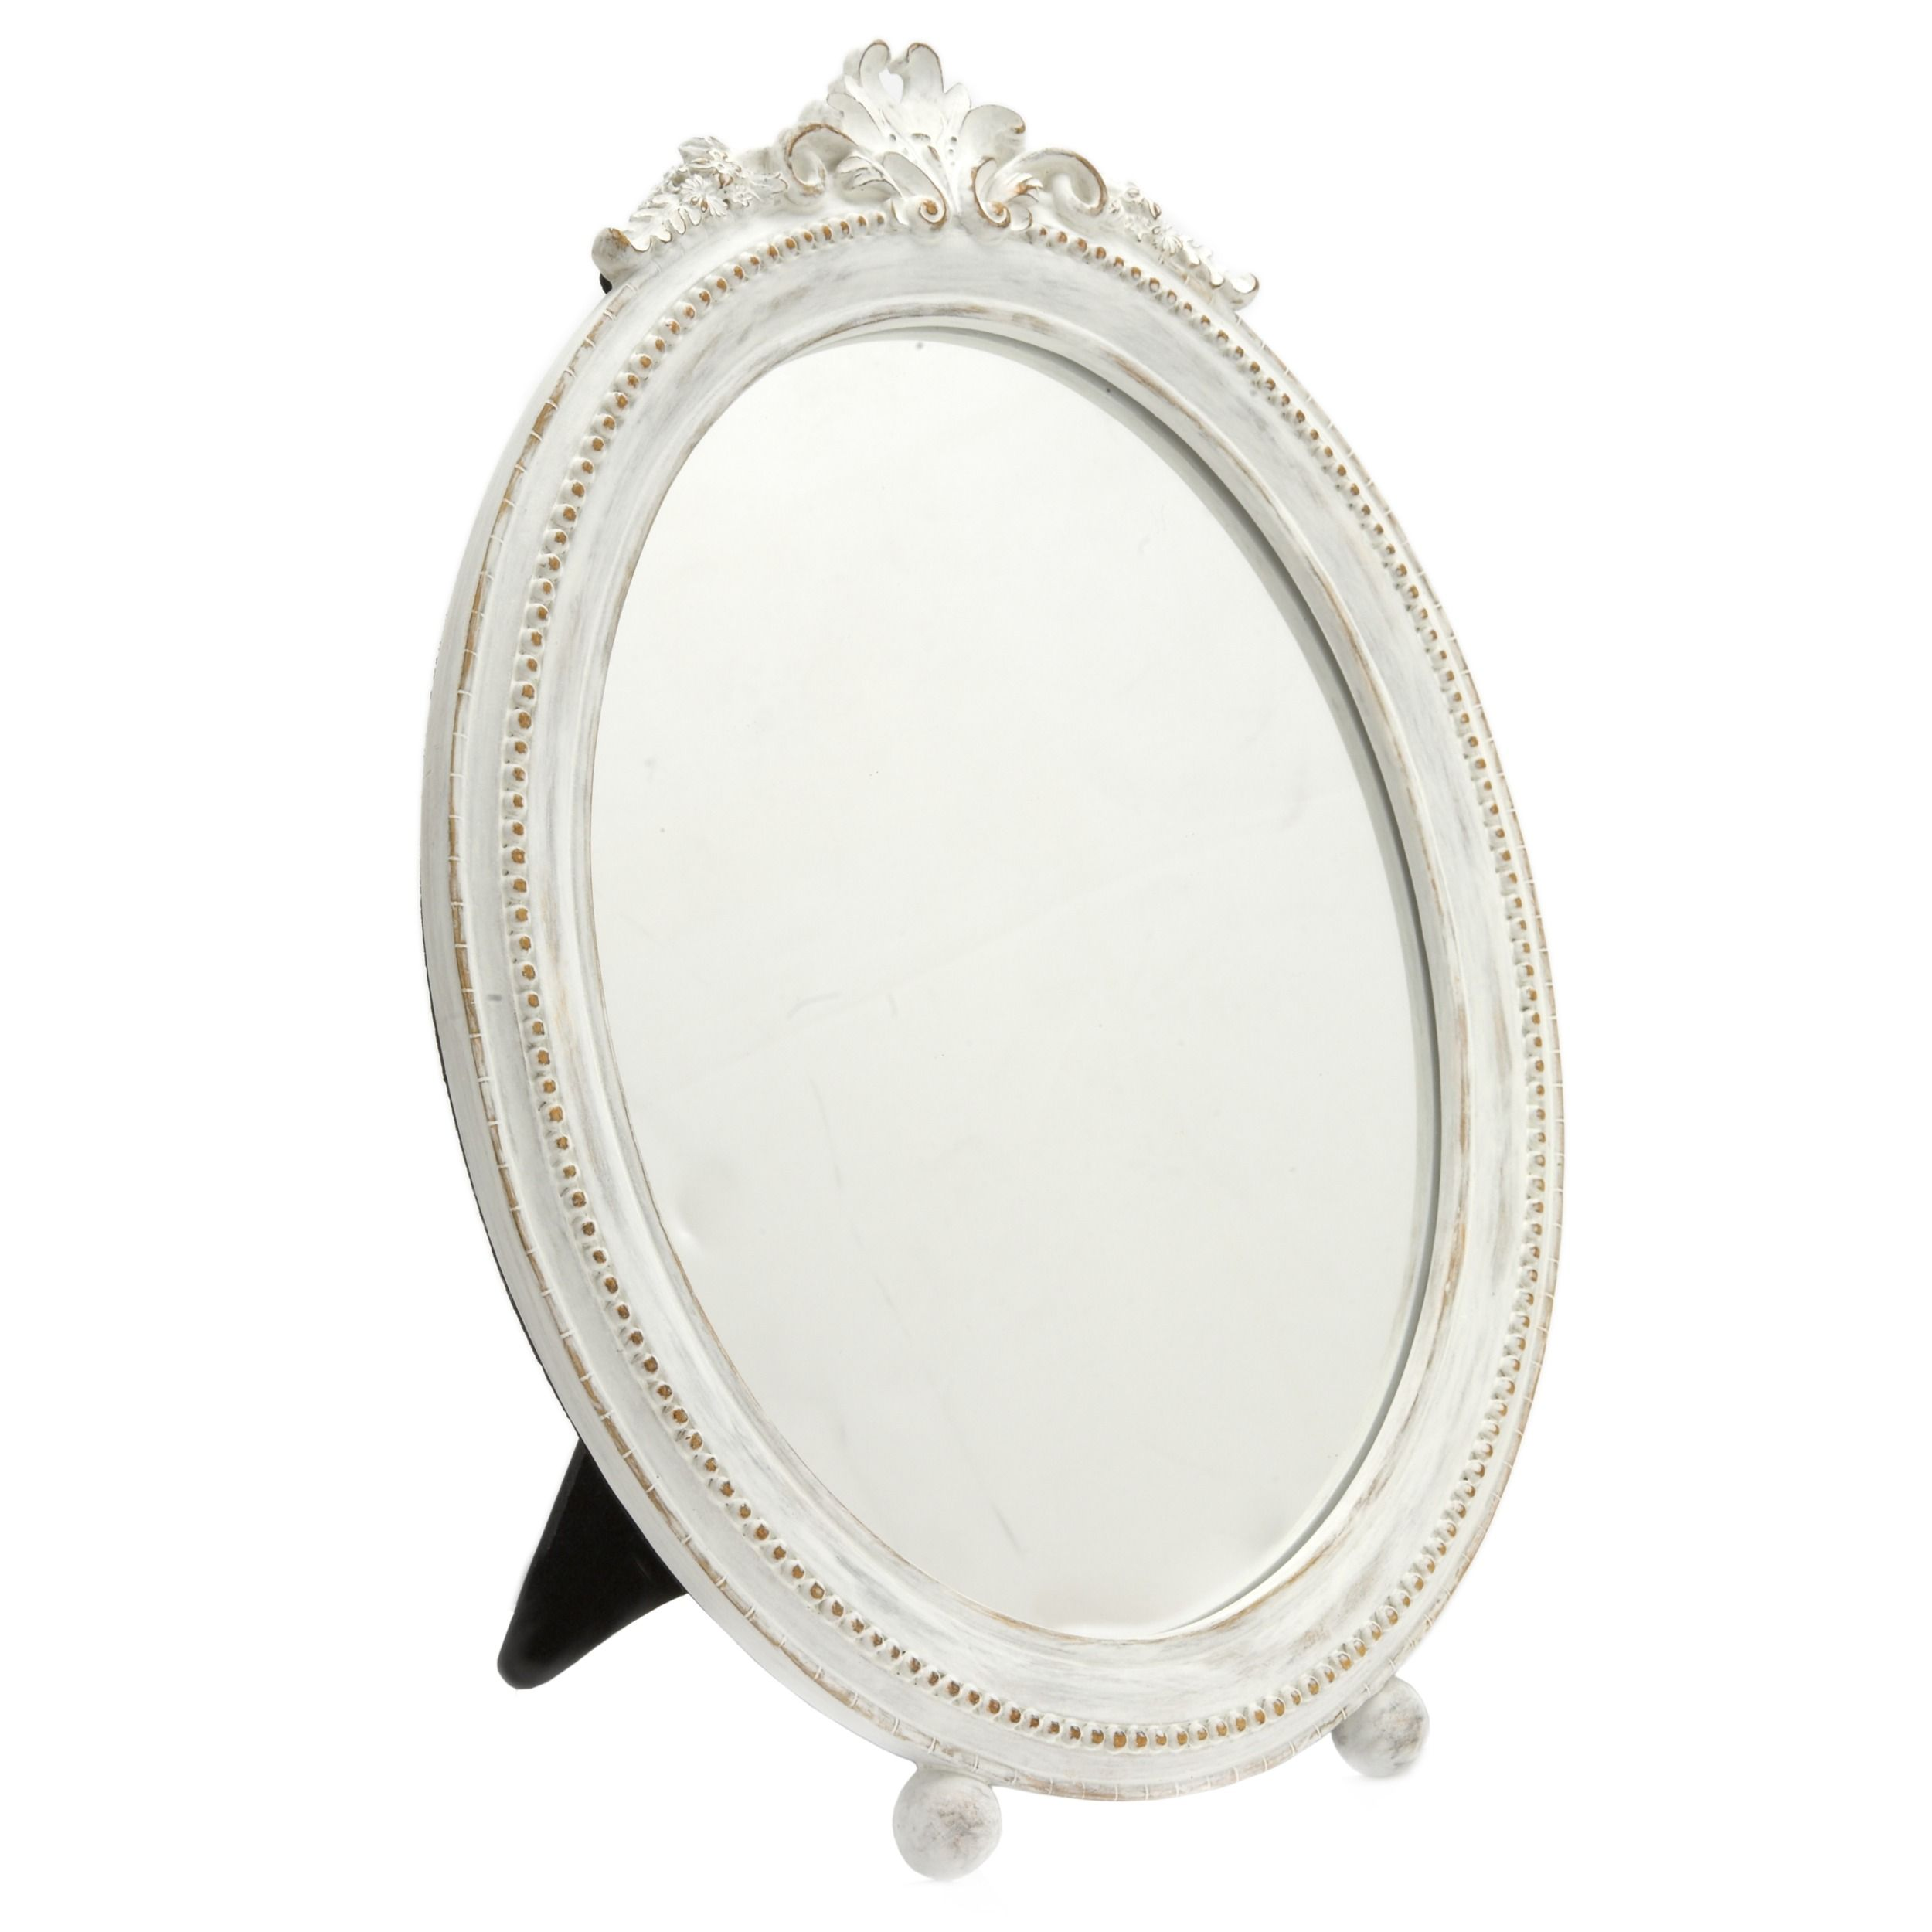 1000+ images about Lane on Pinterest   Oval mirror, Mirror mirror ...